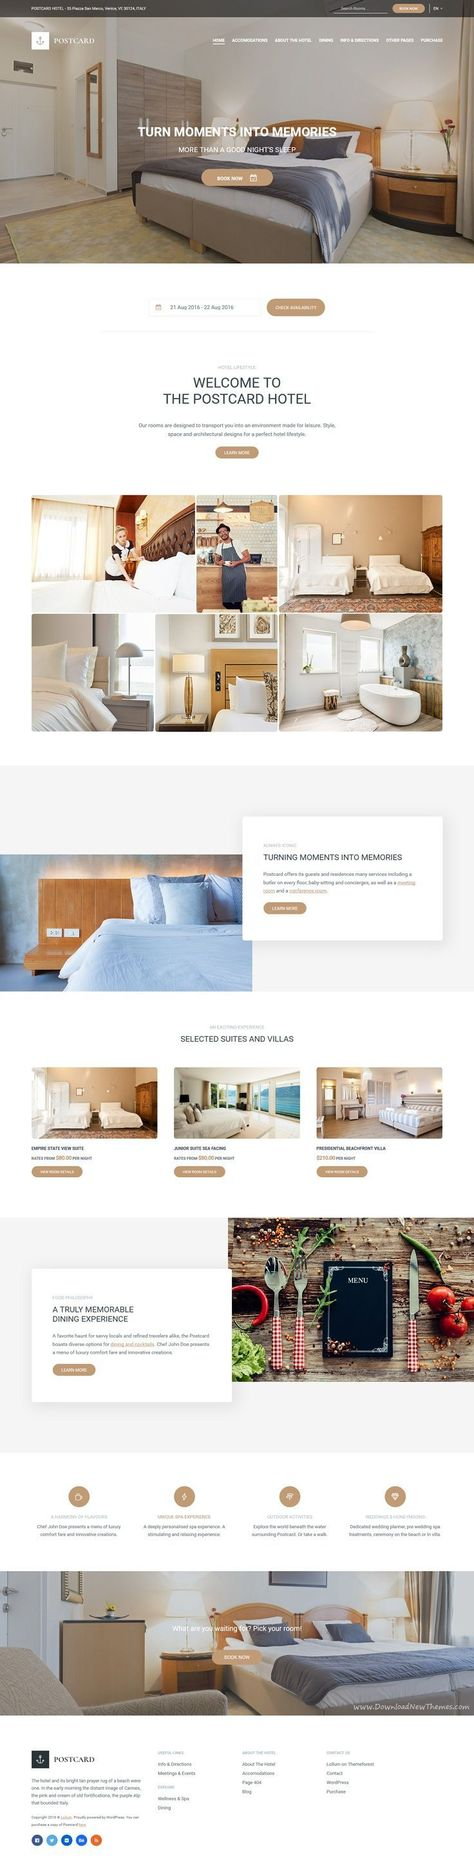 Postcard is a modern #WordPress Theme for responsive #Hotel website with a power - Wordpress Minimal Theme - Ideas of Wordpress Minimal Theme #wordpress #minimaltheme -   Postcard is a modern #WordPress Theme for responsive #Hotel website with a powerful #reservation system download now themeforest.net/